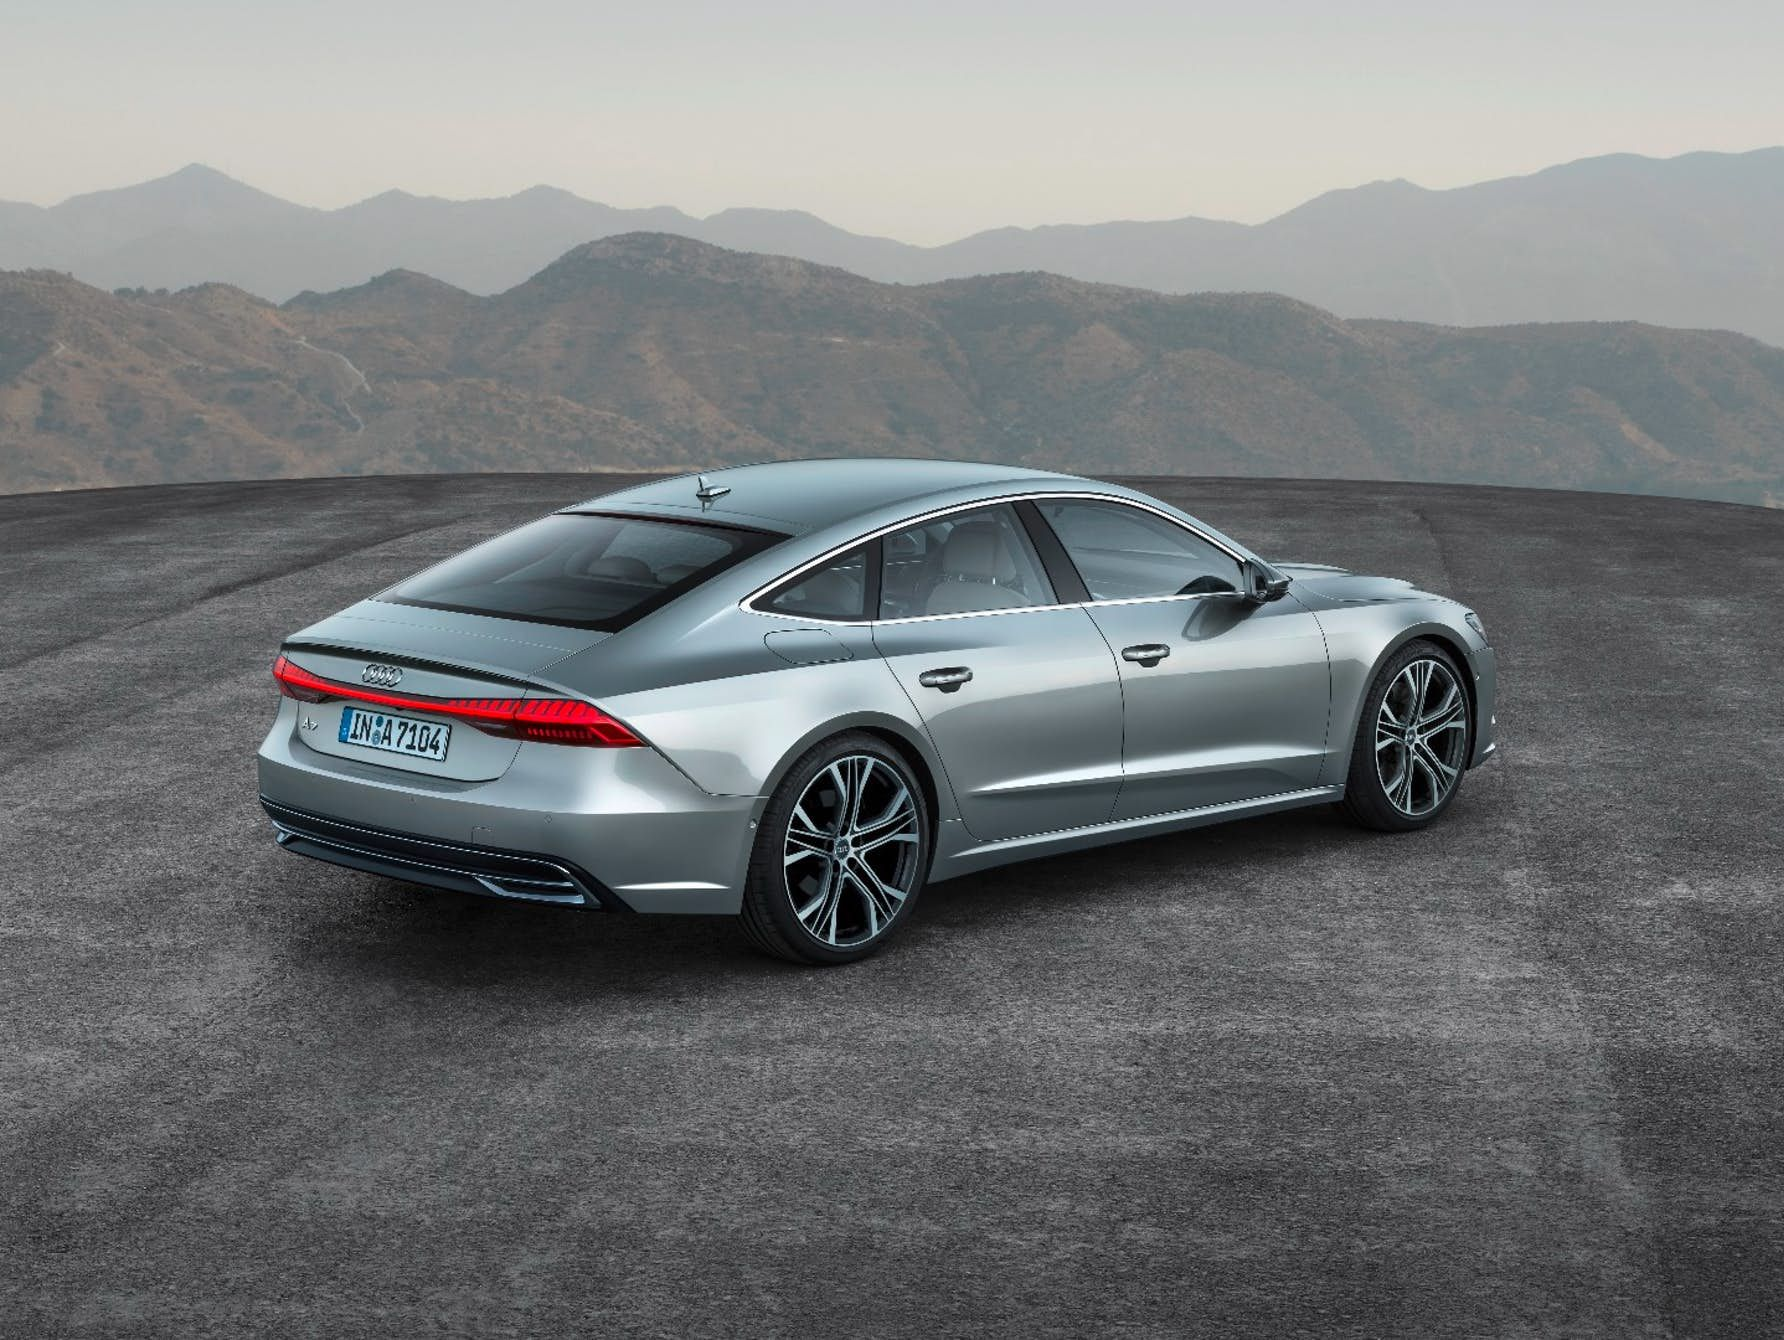 Audi Gives New A7 Sportback An Icy Glare Progressive Styling And Plenty Of Tech Audi A7 Sportback Audi A7 A7 Sportback